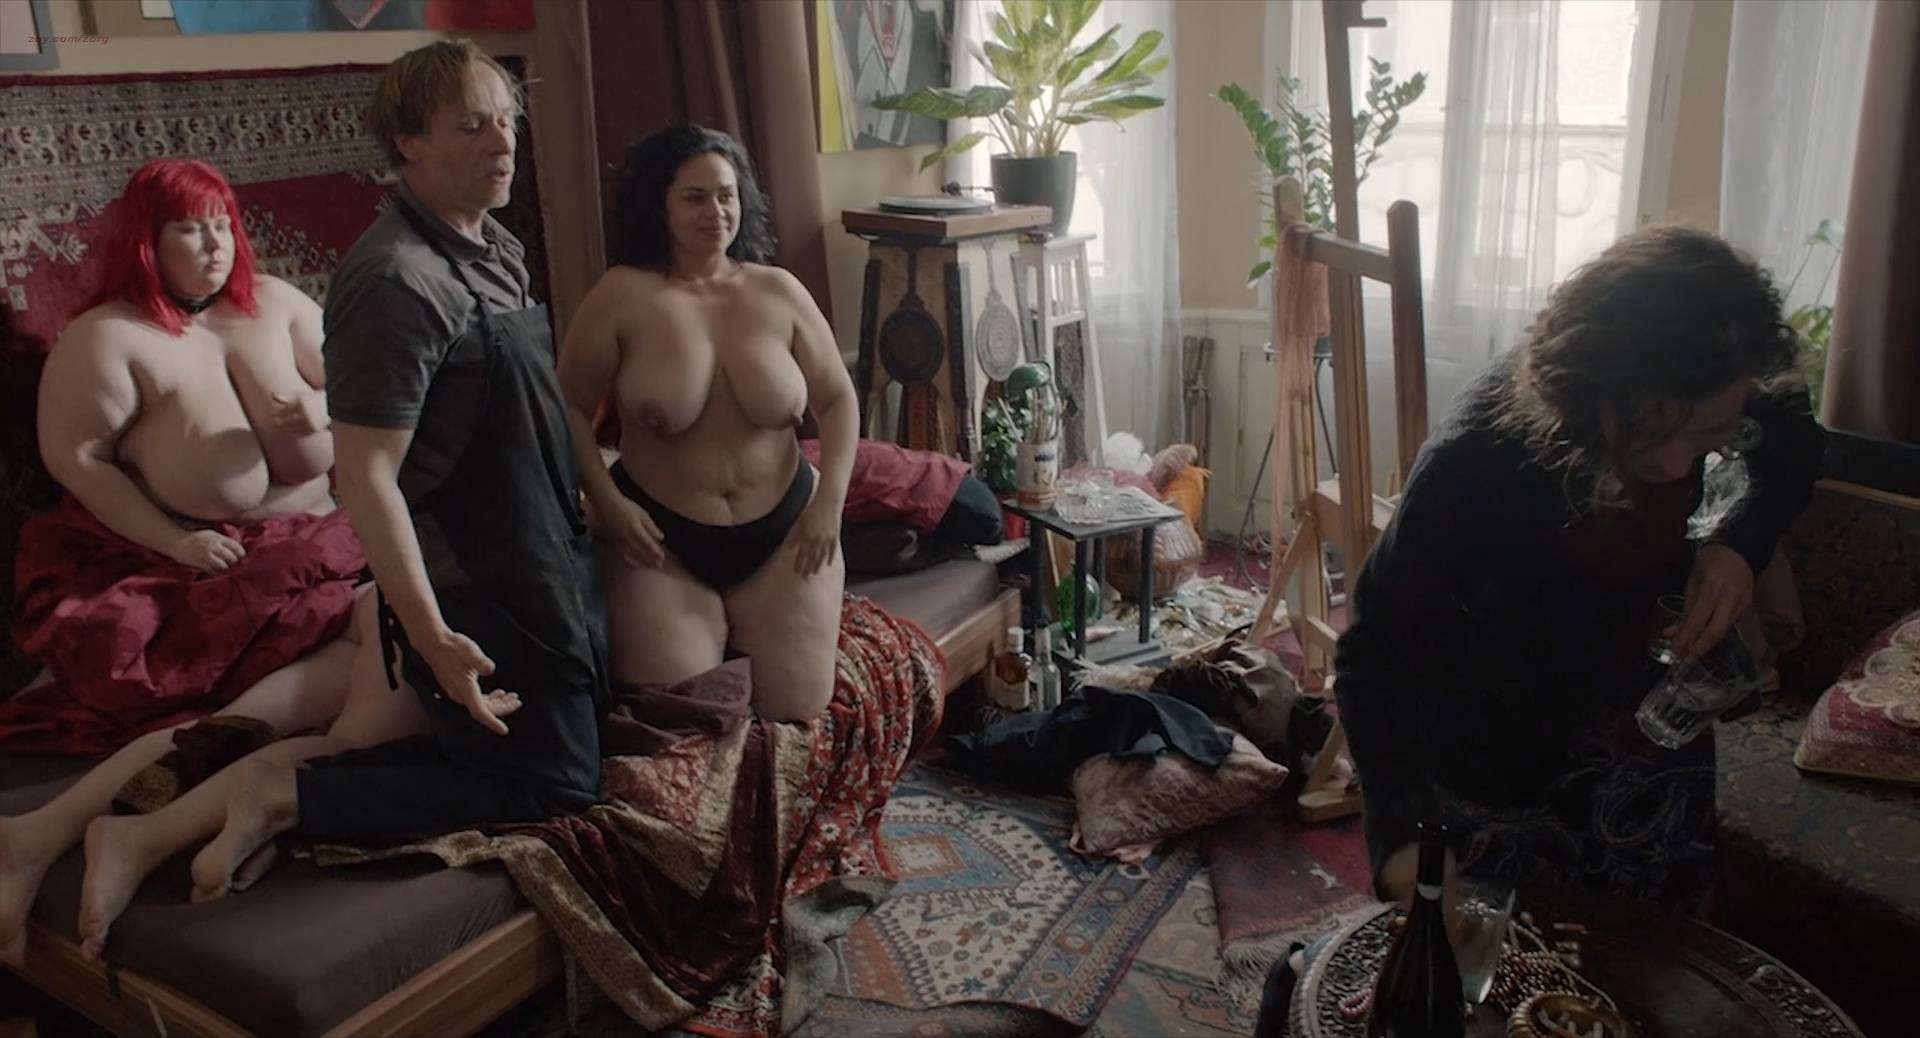 Marie Málková nude full frontal sex and others nude - Fotograf (CZ-2015) Web-DL hd1080p (4)